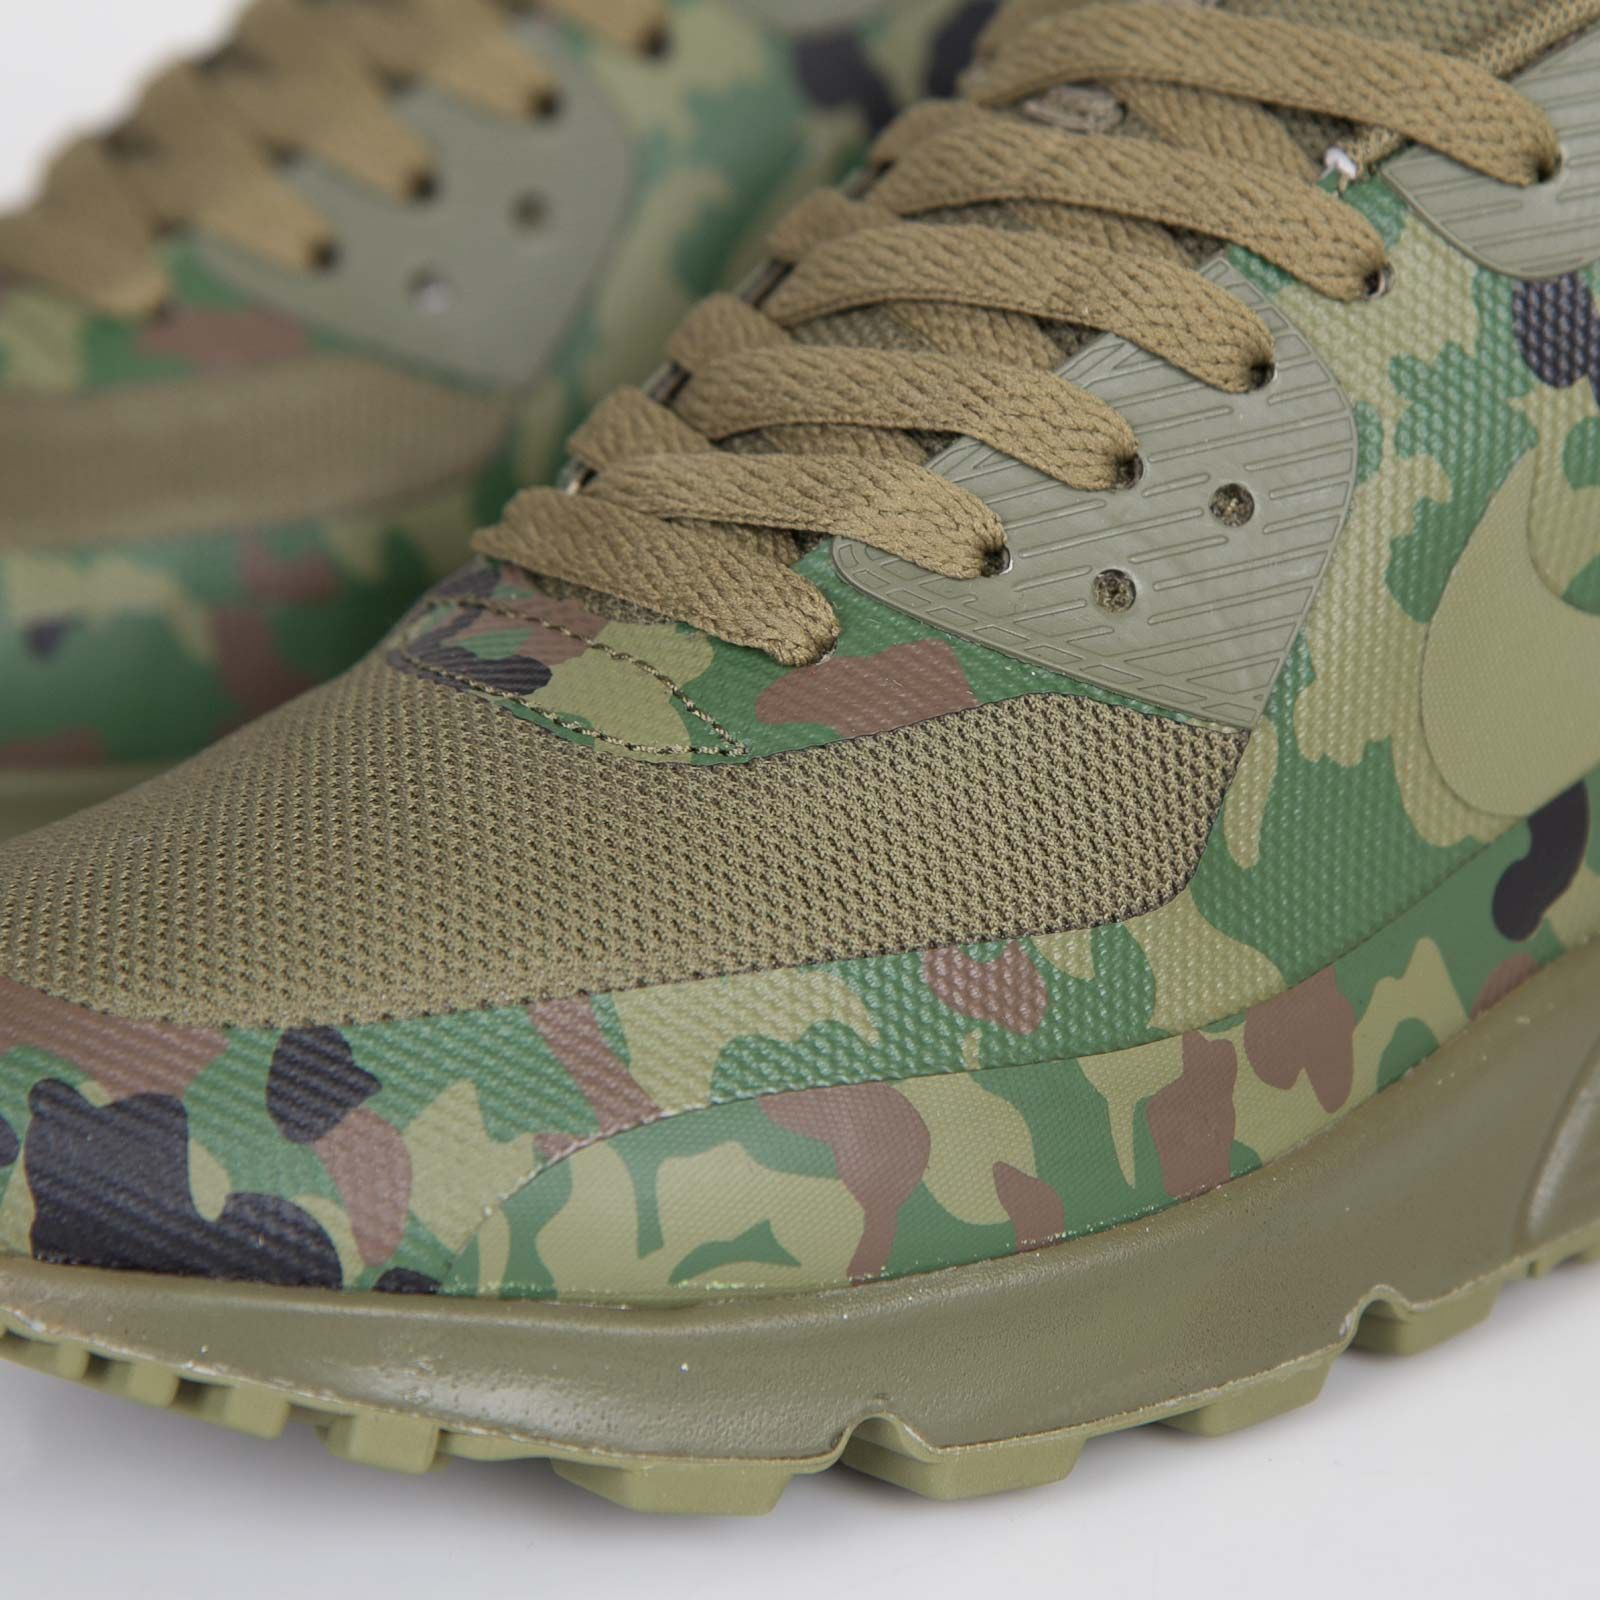 Nike Air Max 90 Japan SP 624728 220 | Men Get'n It In